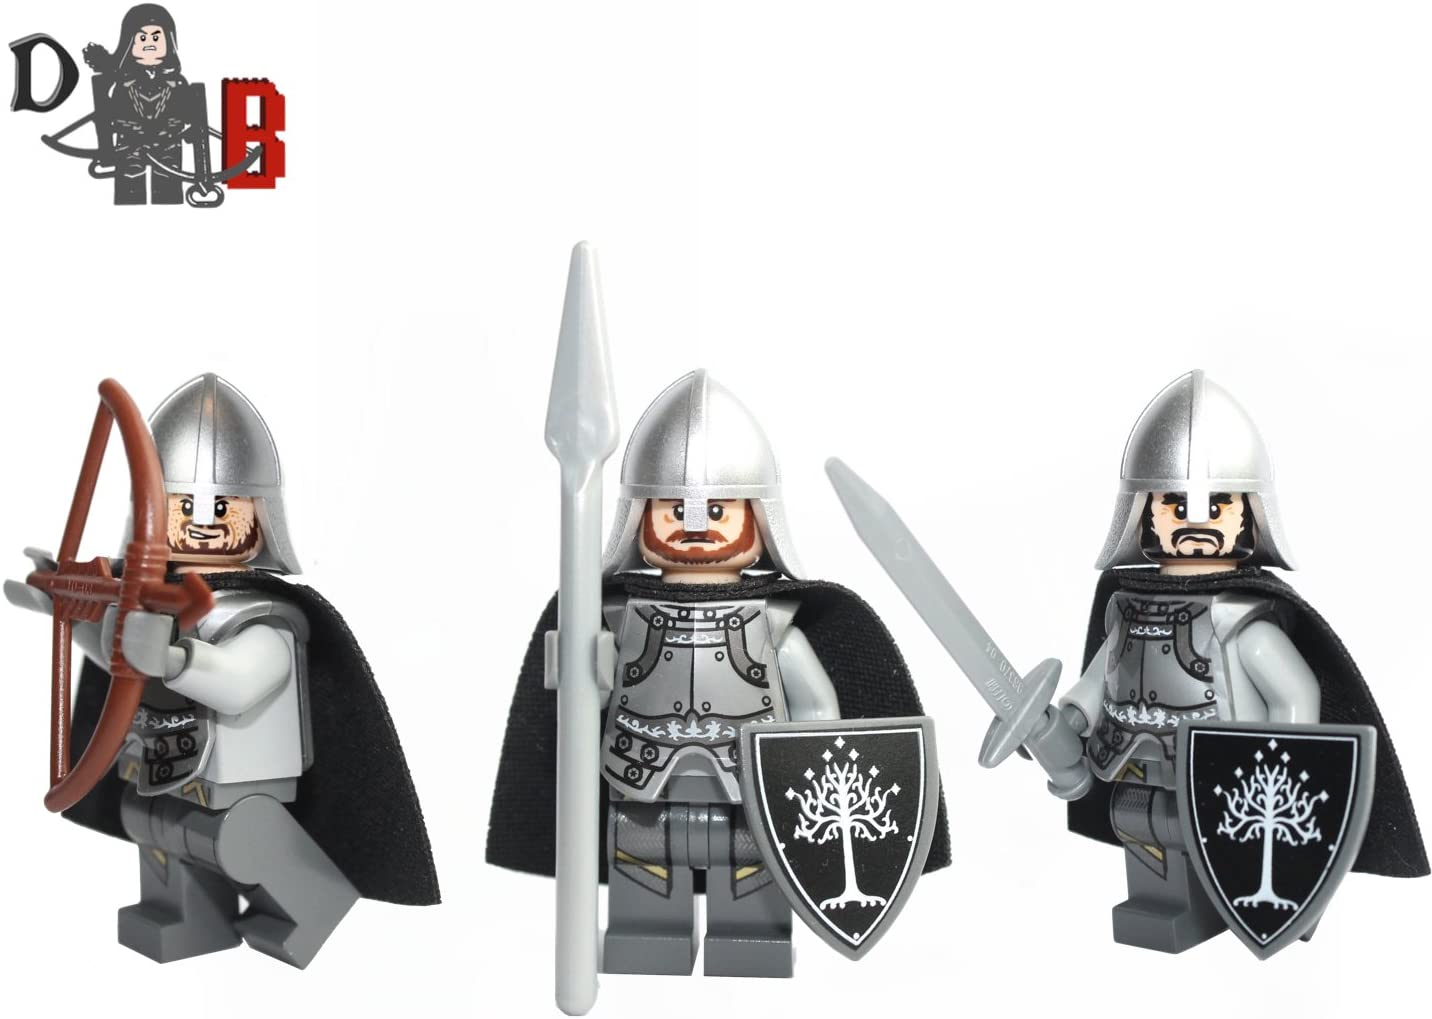 Made using LEGO parts. Lord of the rings Gondor Soldiers 3 Minifigures